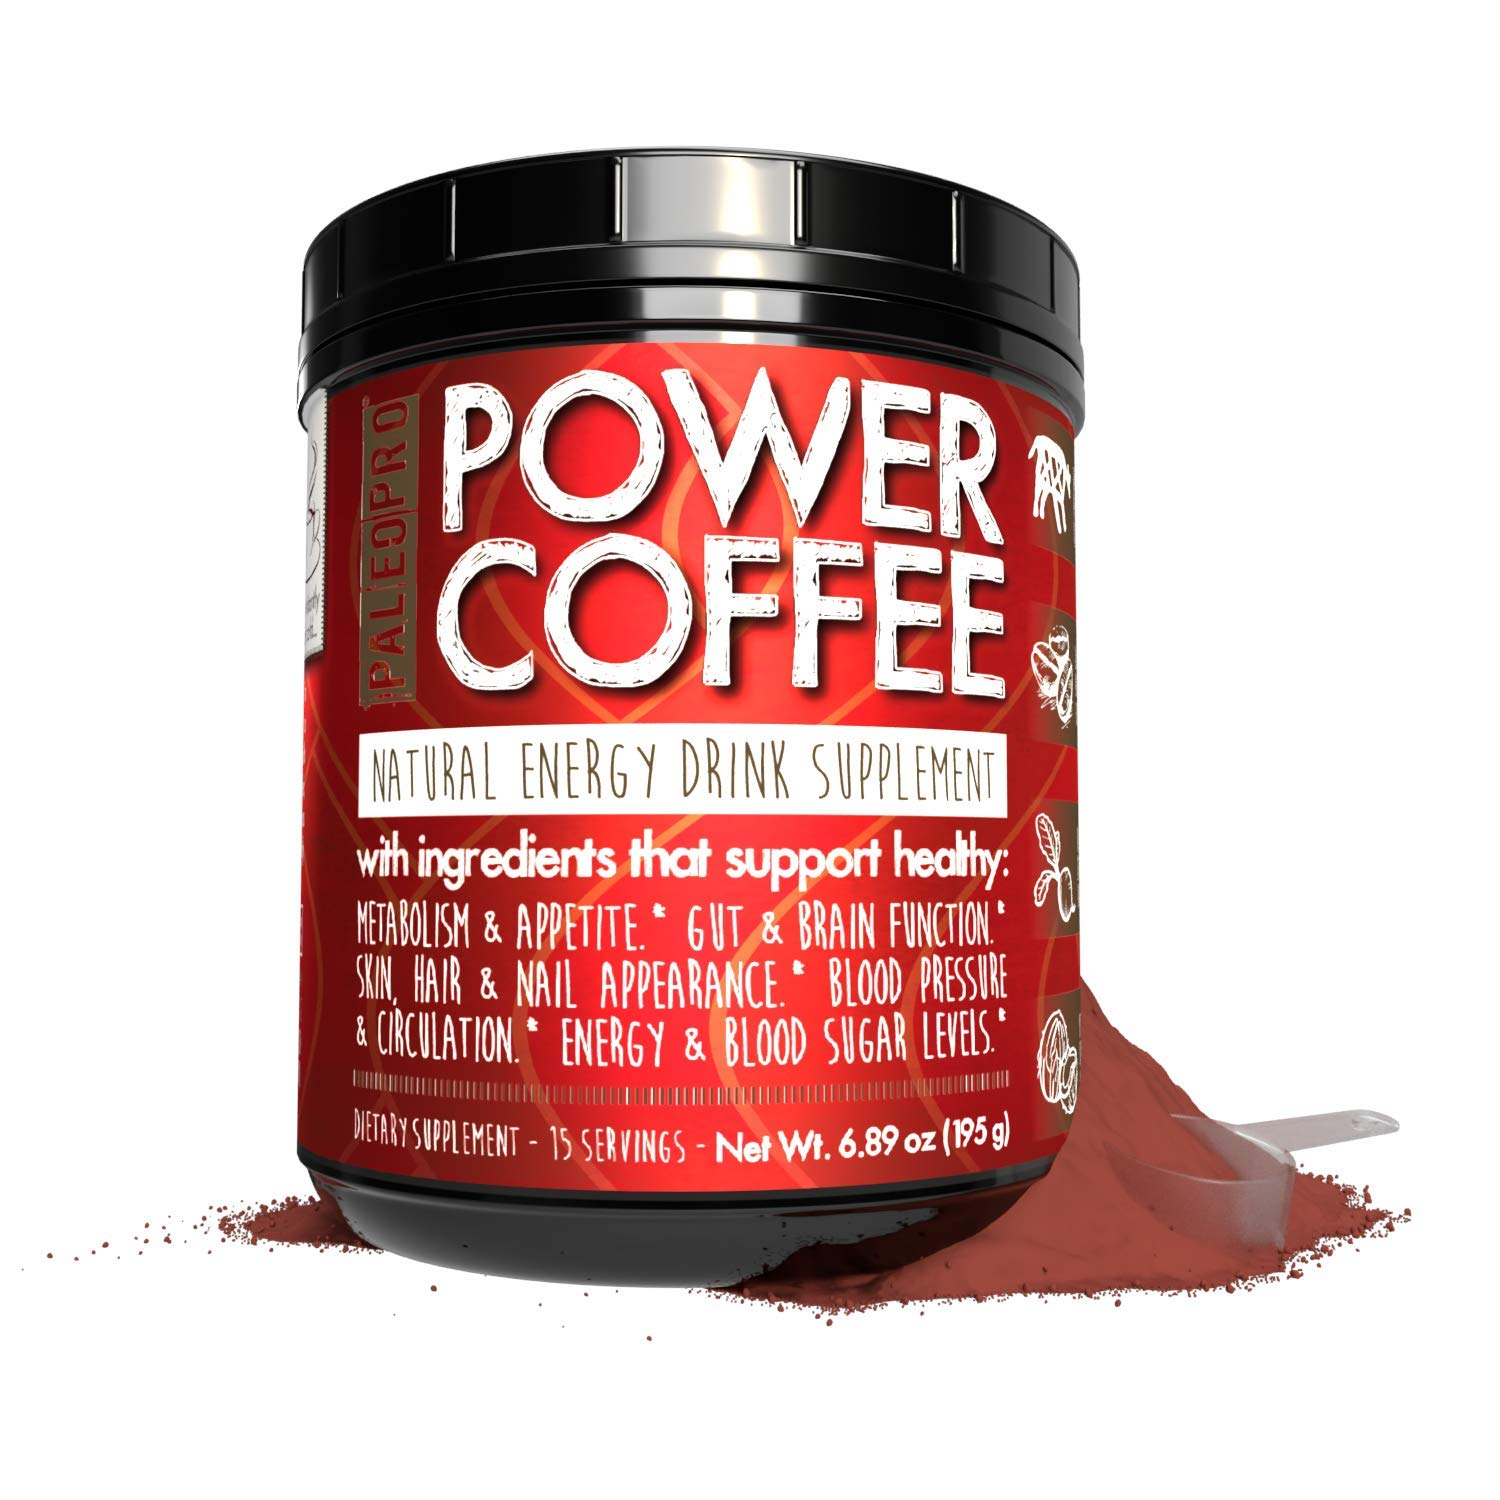 PaleoPro Paleo Power Coffee Energy Drink Supplement Powder from 100% Arabica Coffee with Grass-Fed Collagen, MCT Rich Coconut Oil and Beet Root, Keto Ingredients, About 15 Servings